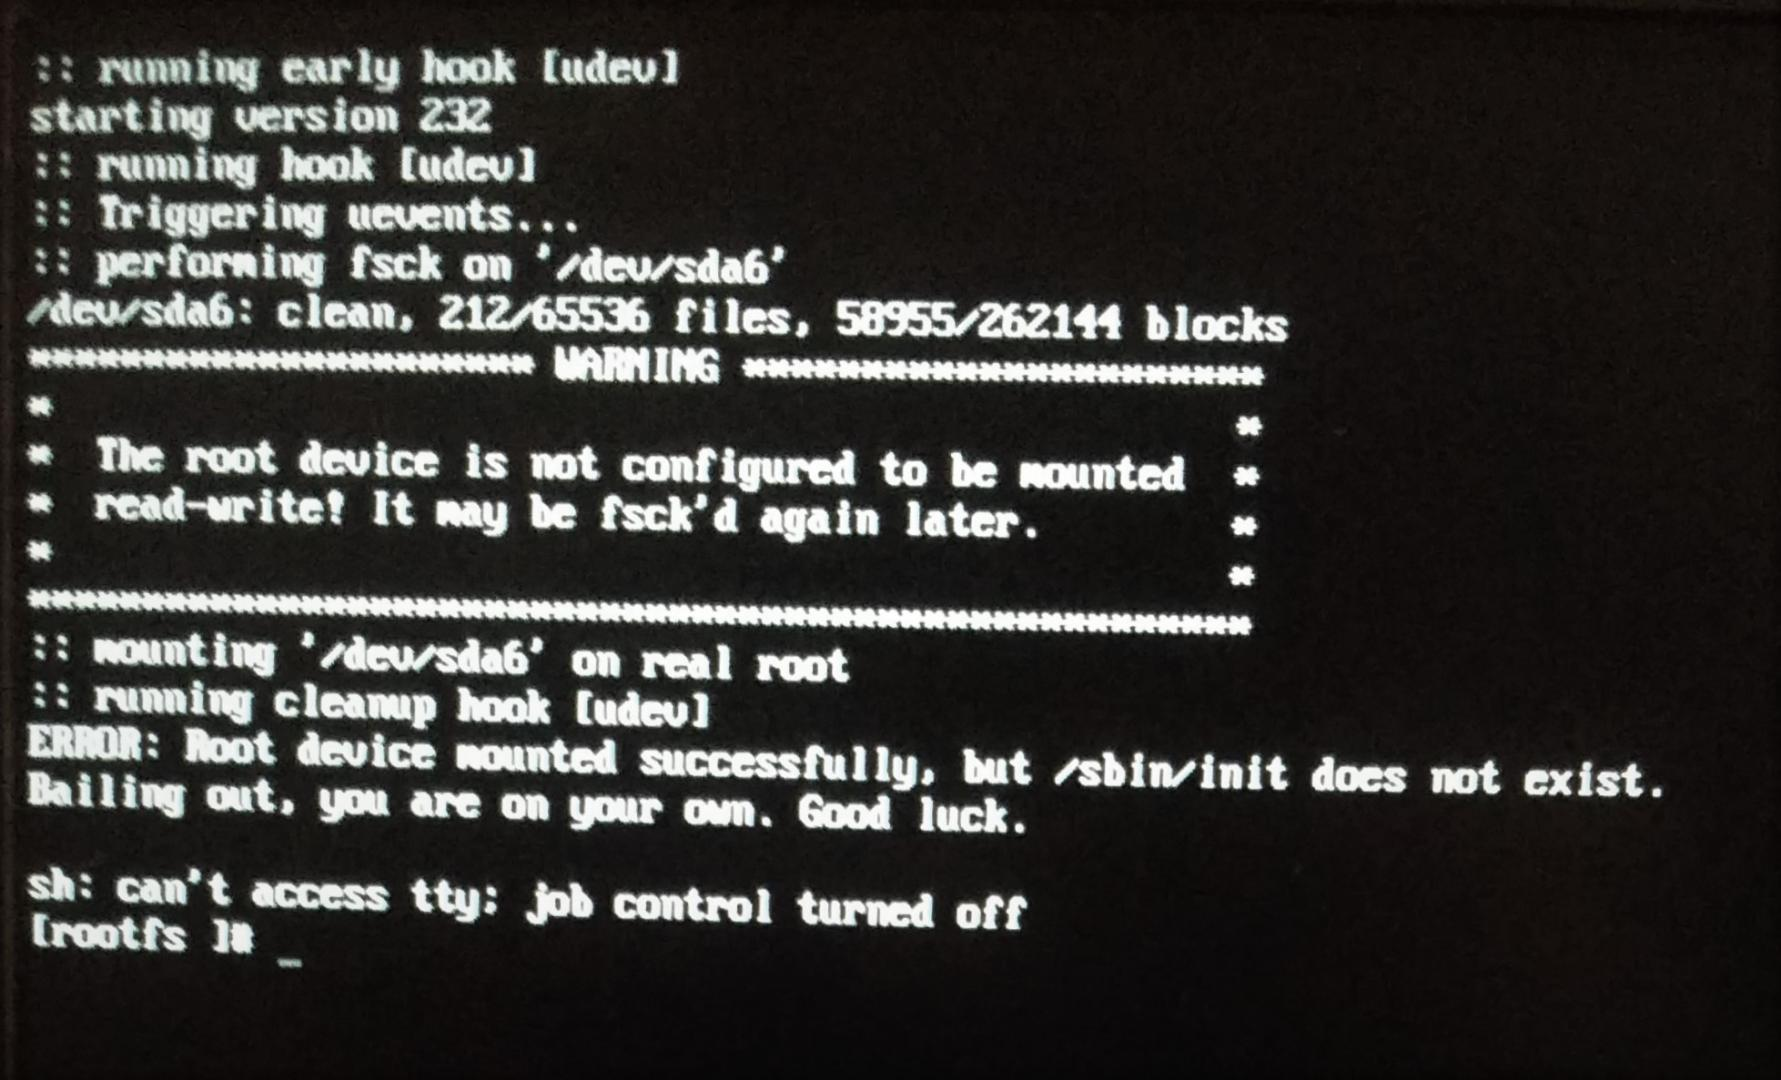 Unable to boot after upgrading to Kernel 4 14 on Fedora 27